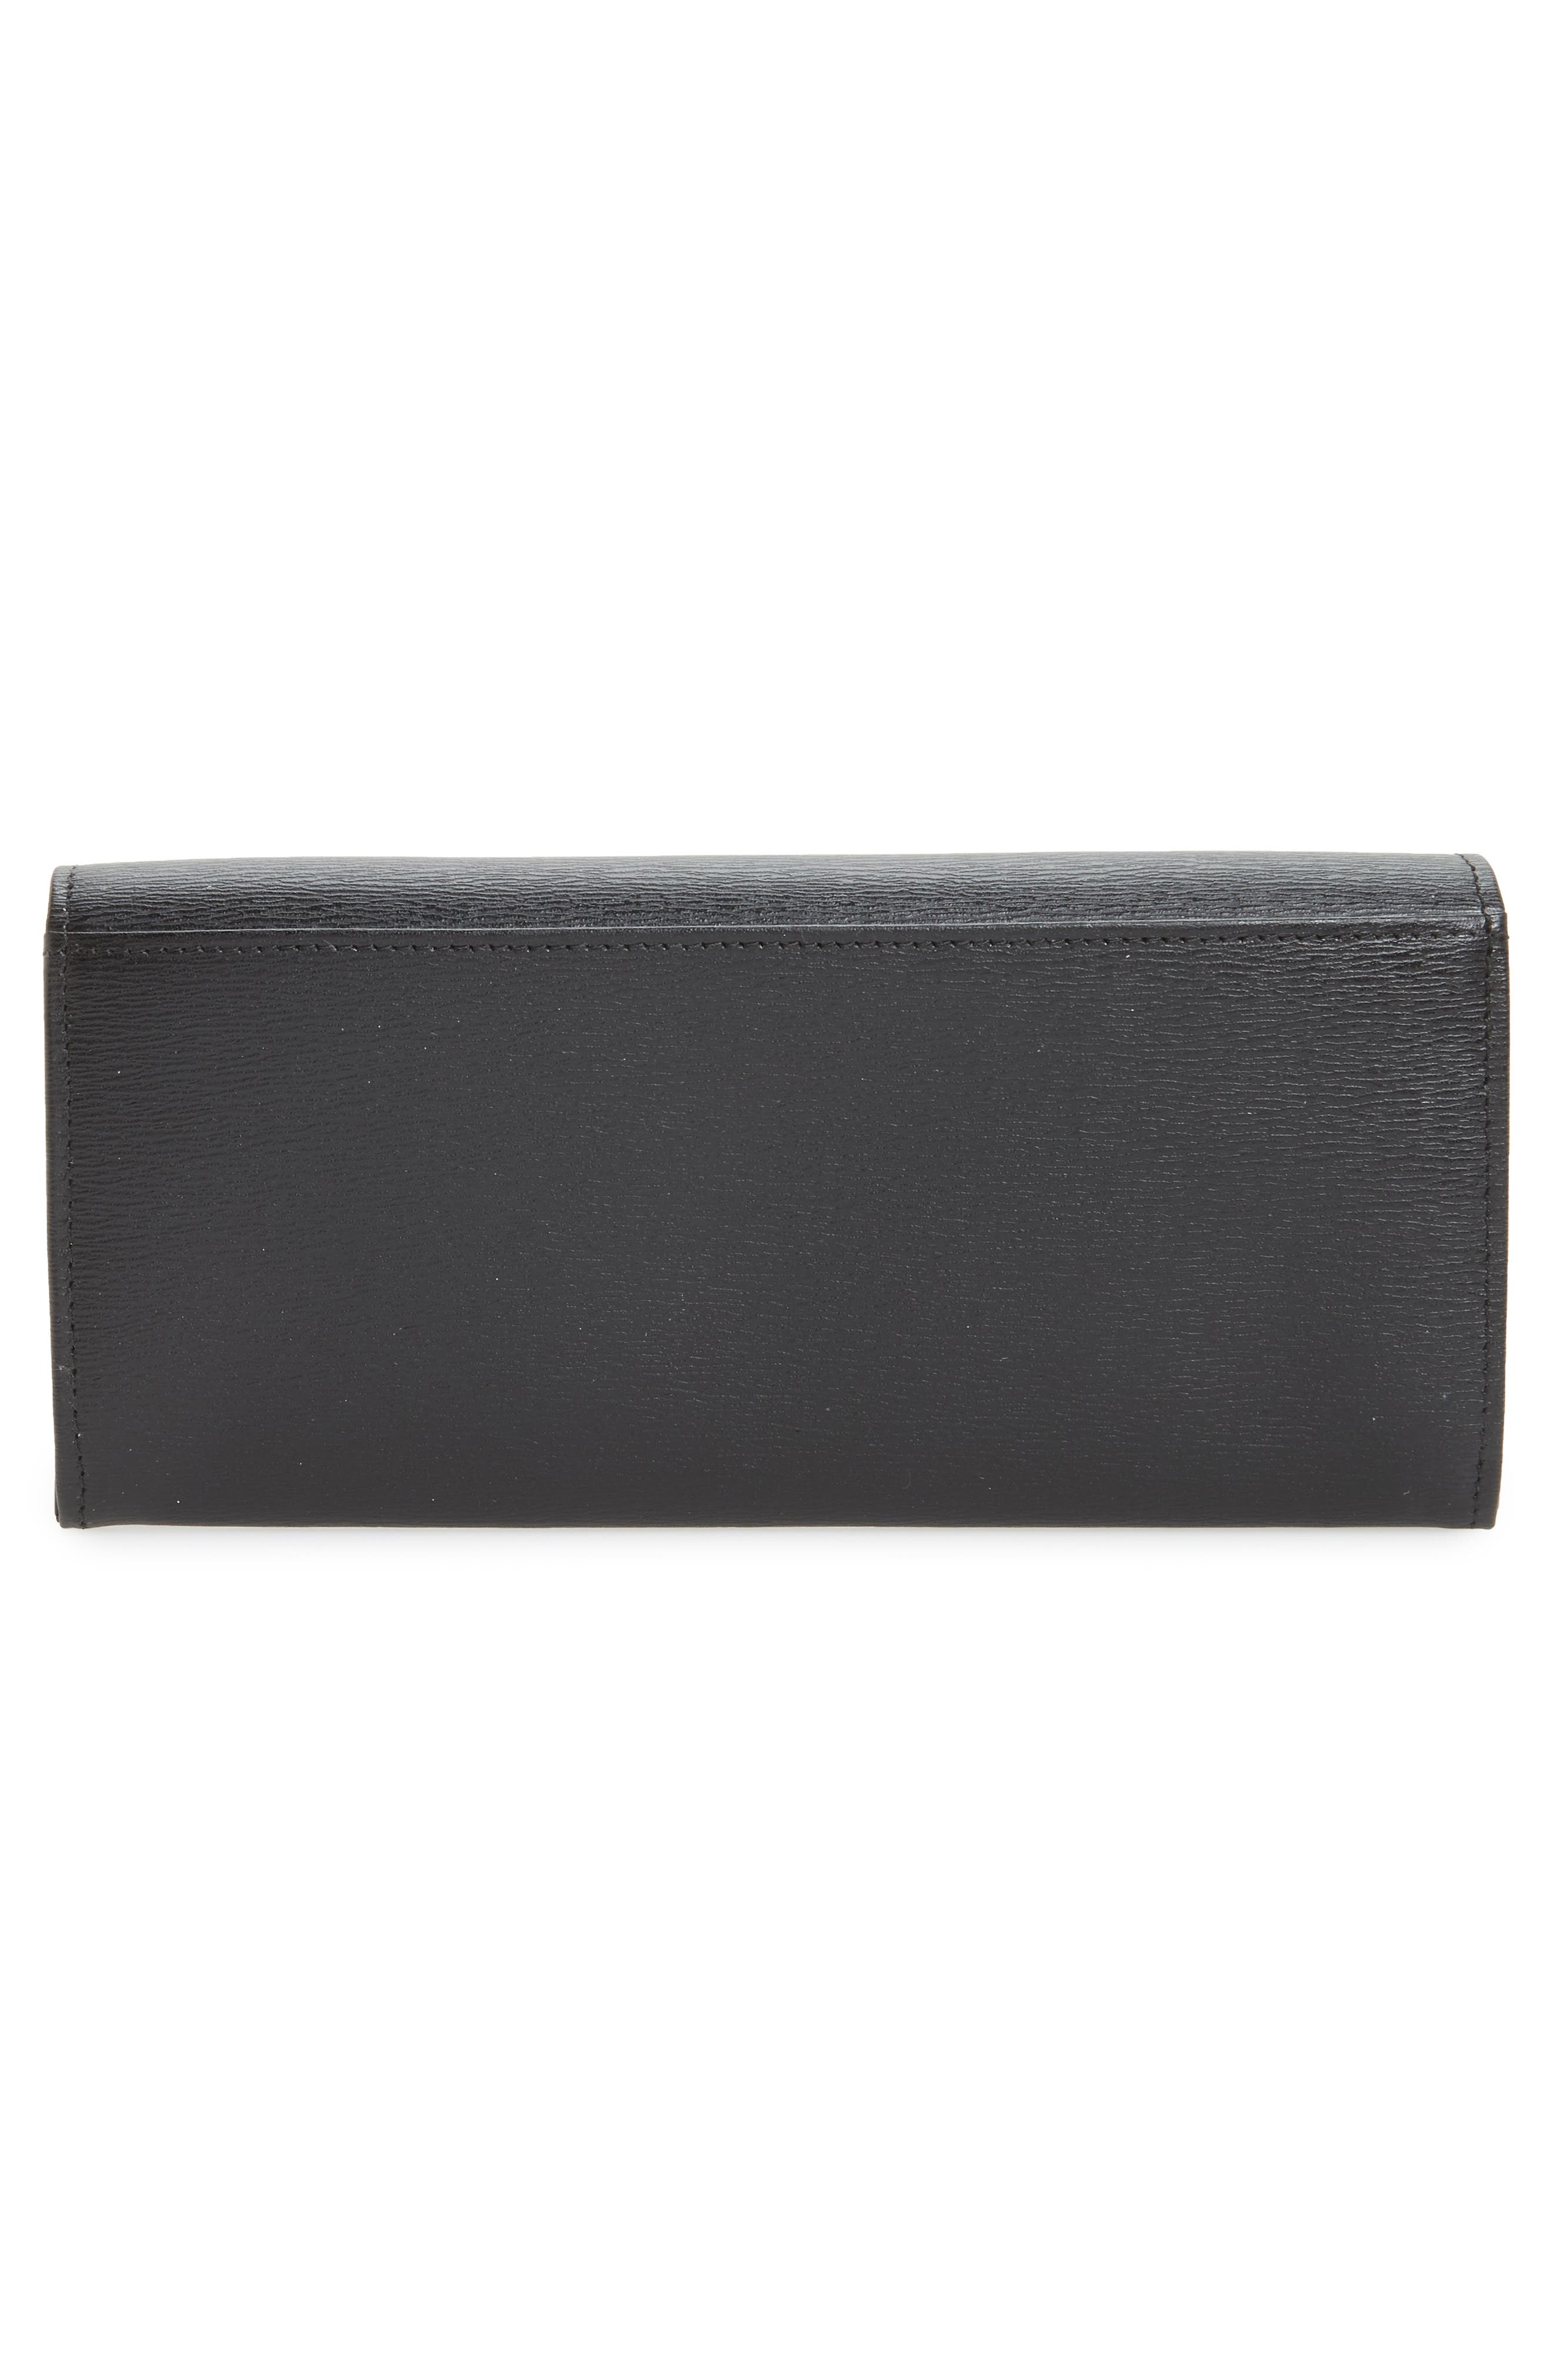 Roseau Leather Continental Wallet,                             Alternate thumbnail 3, color,                             002